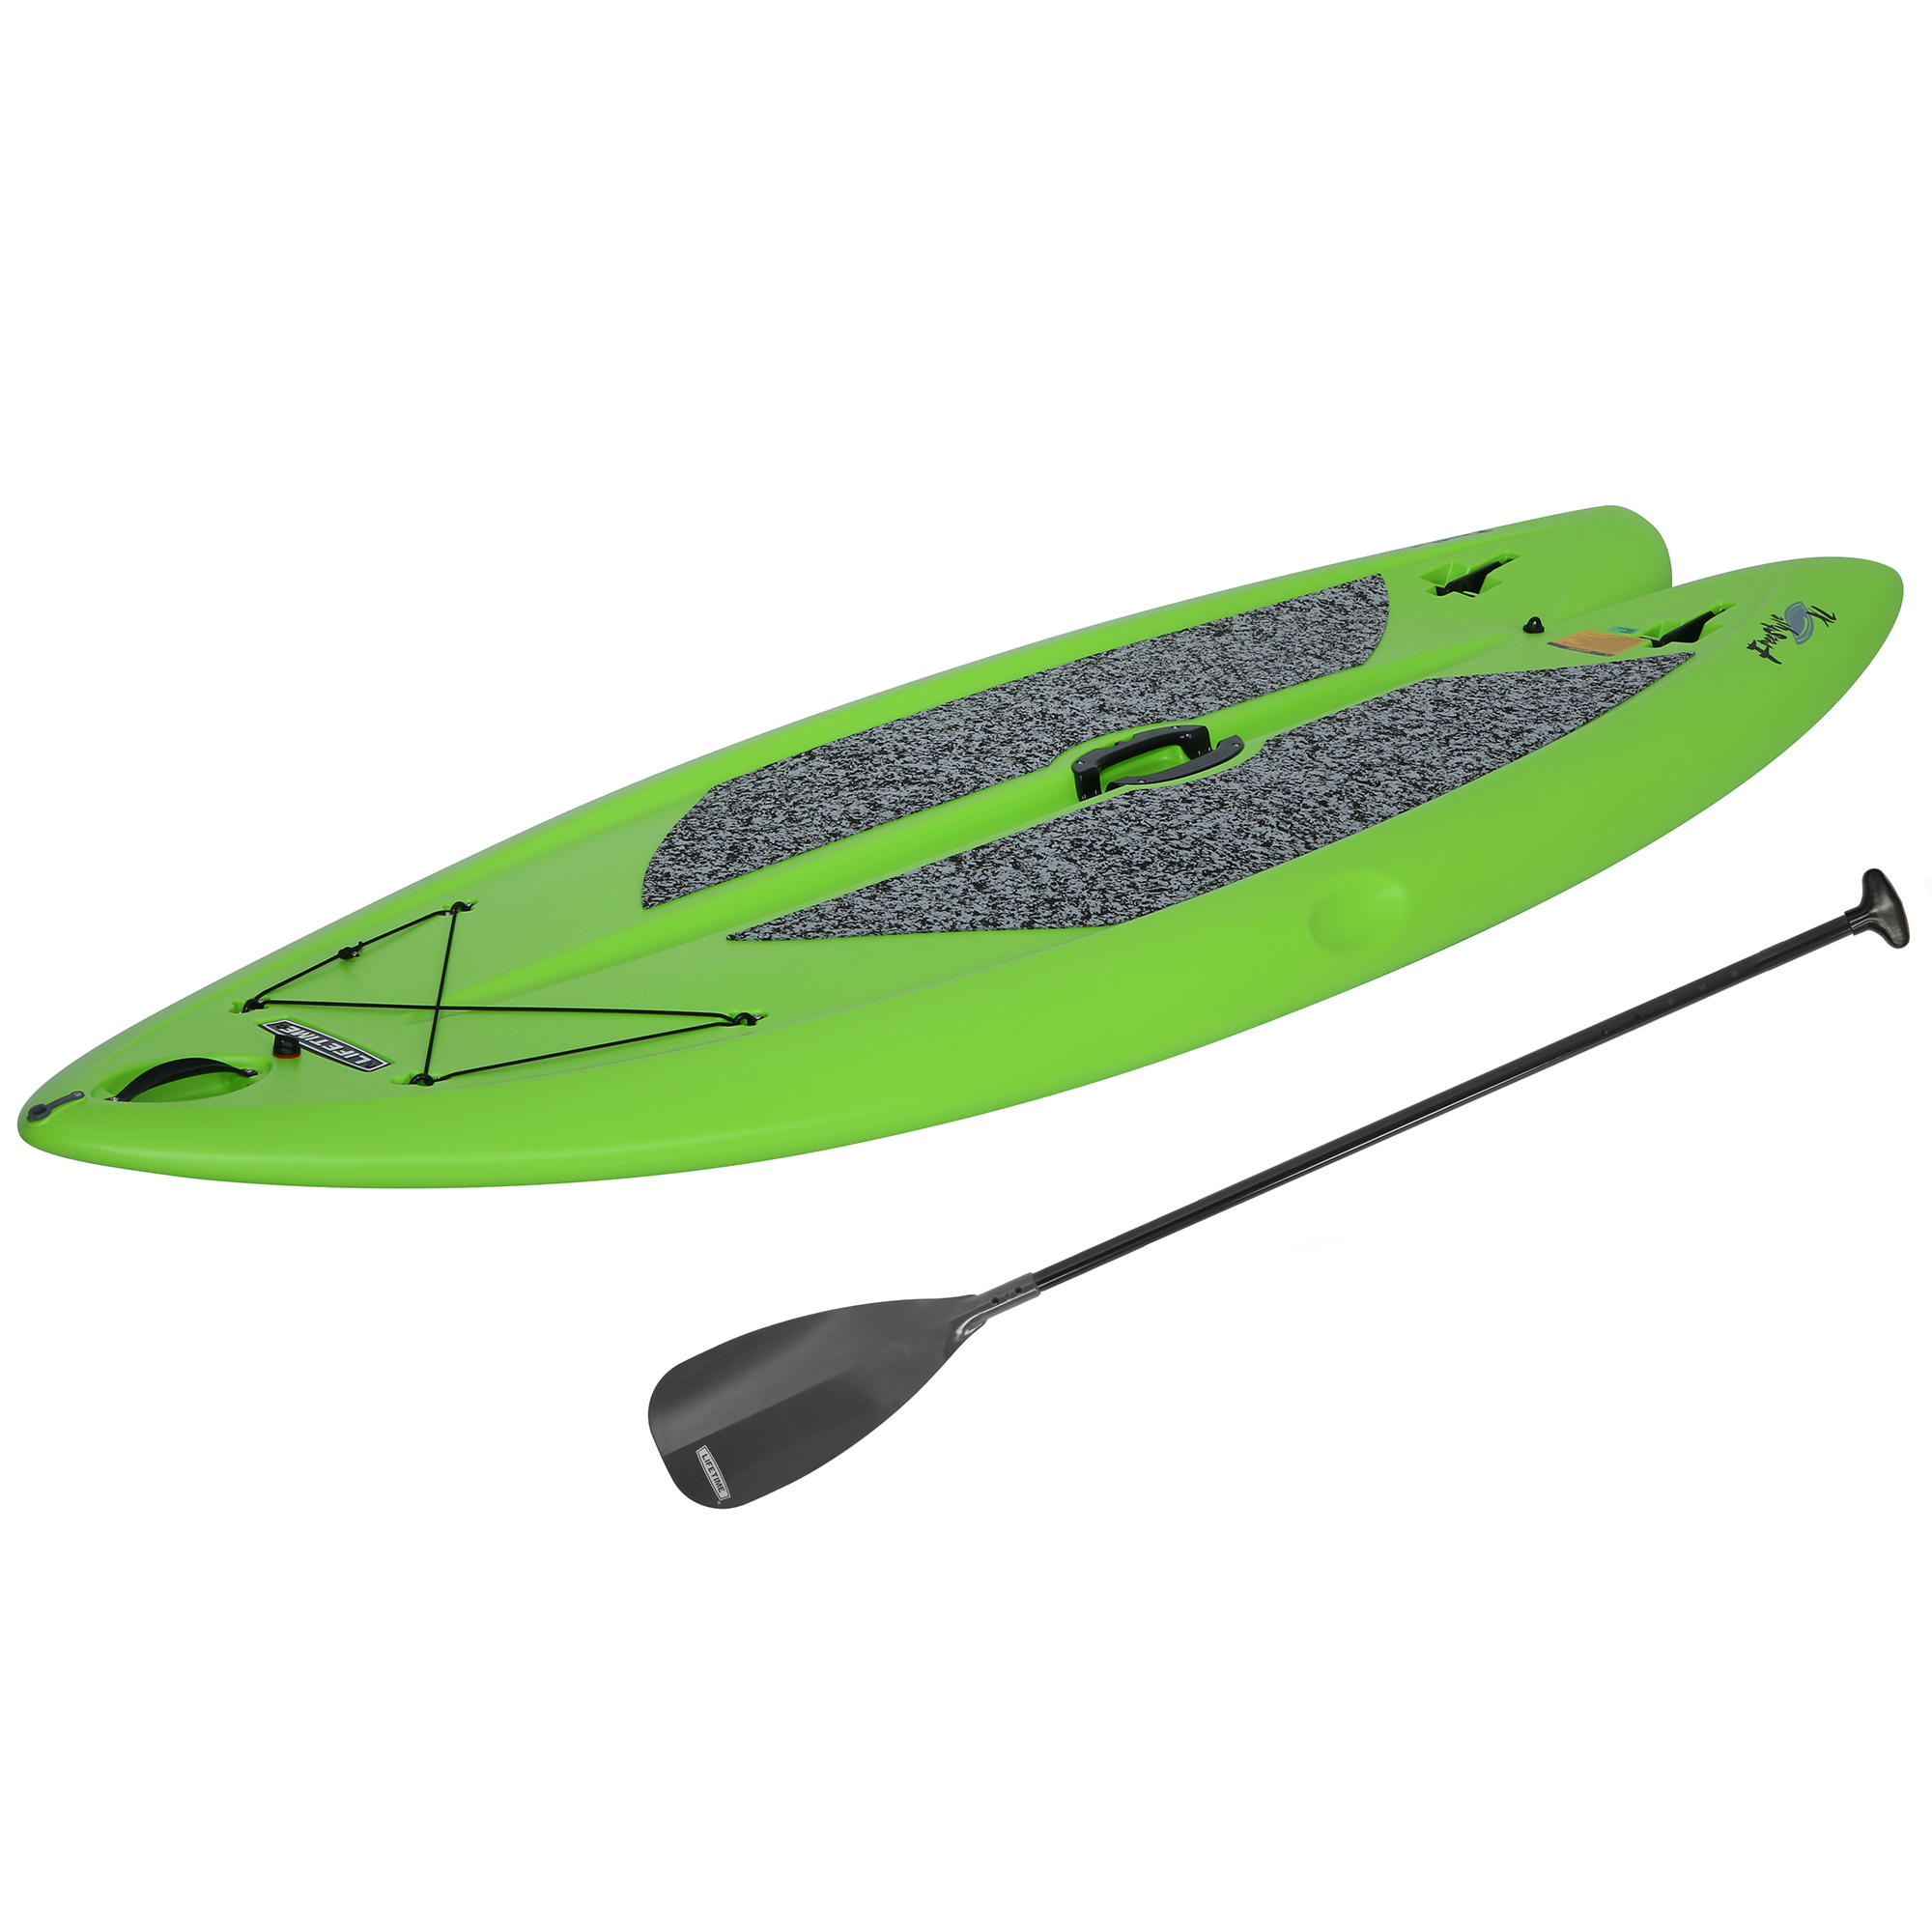 Lifetime Freestyle XL 98 Stand-Up Paddleboard (Paddle Included), 90213 by Lifetime Products